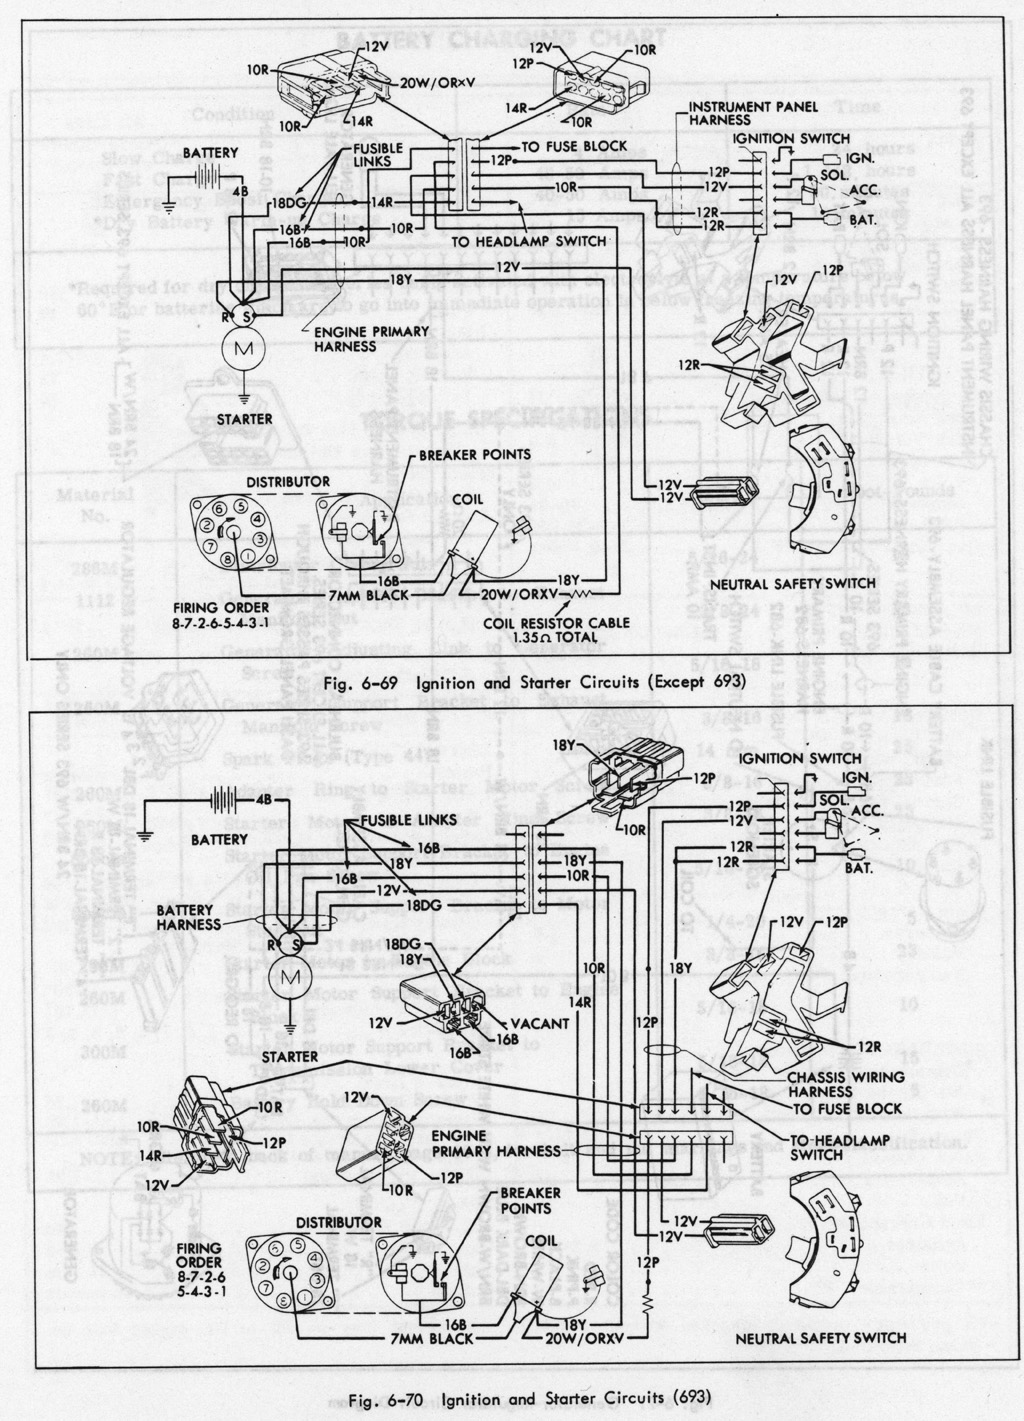 ignition_starter diagram 1969 firebird wiring diagram & 1969 firebird wiring diagram rear 1967 firebird wiring diagram at aneh.co